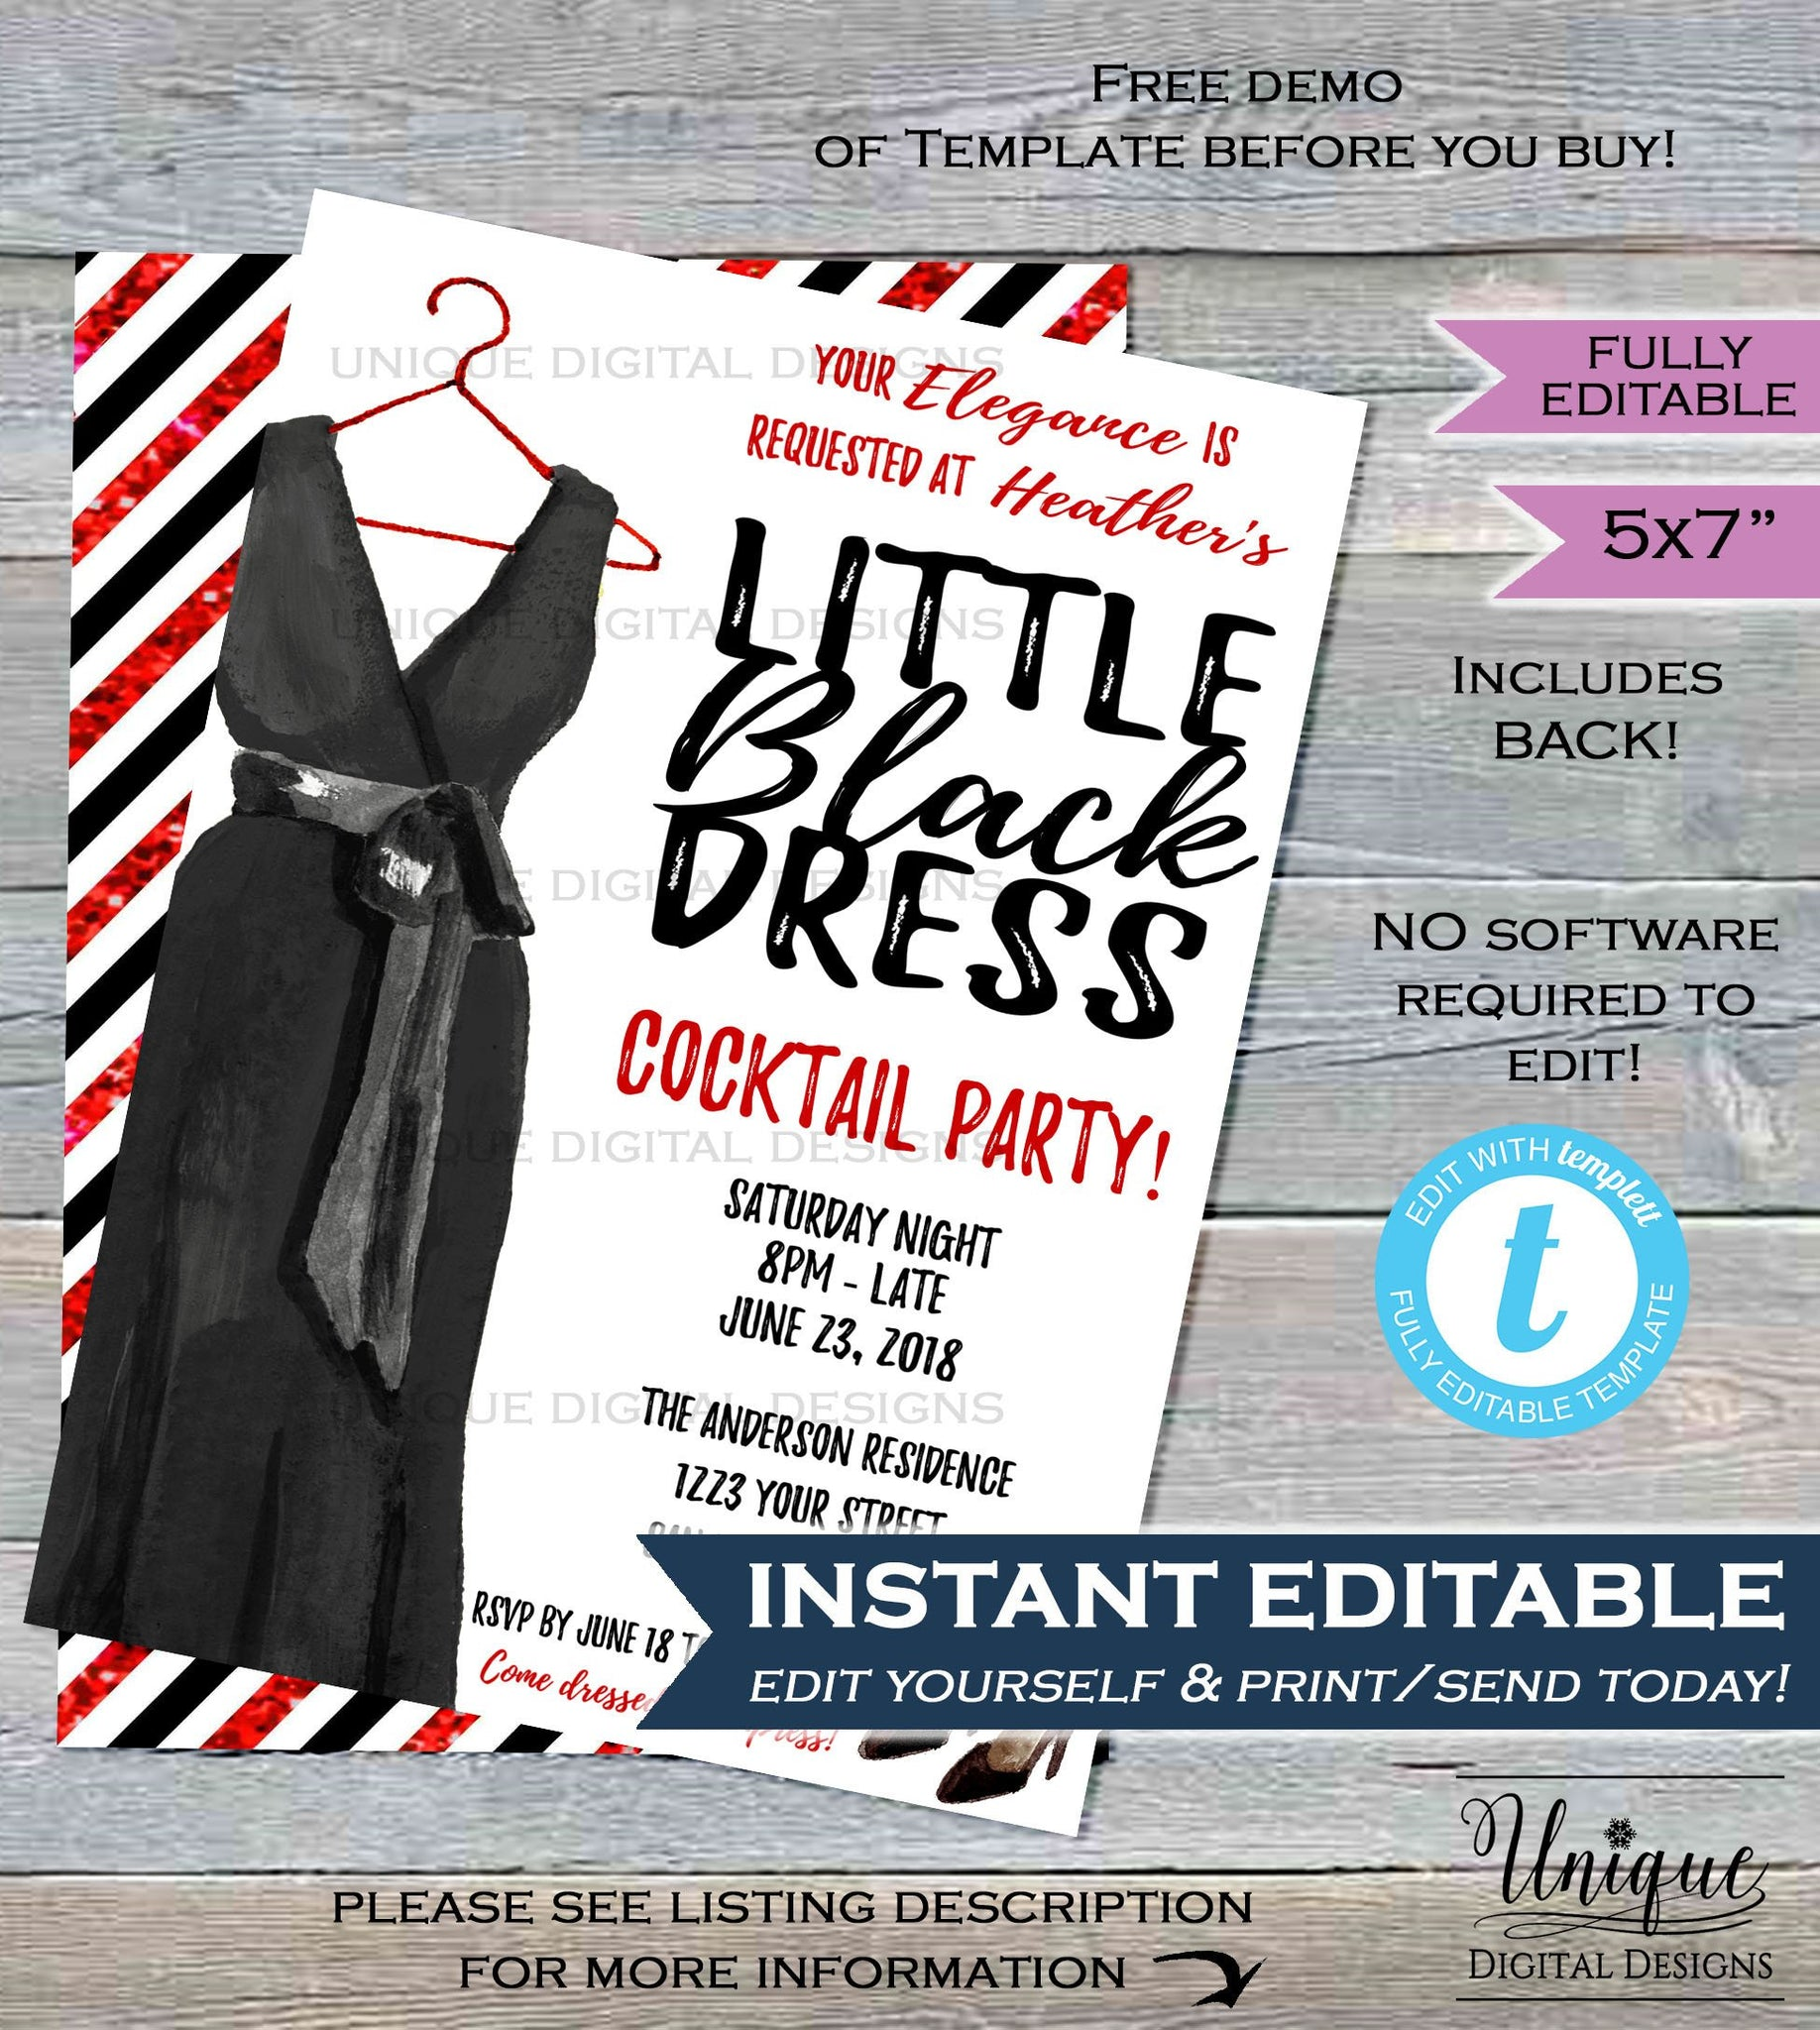 Little Black Dress Invitation Cocktail Party Invite Girls Night Out Dress to Impress Ladies Wine ...